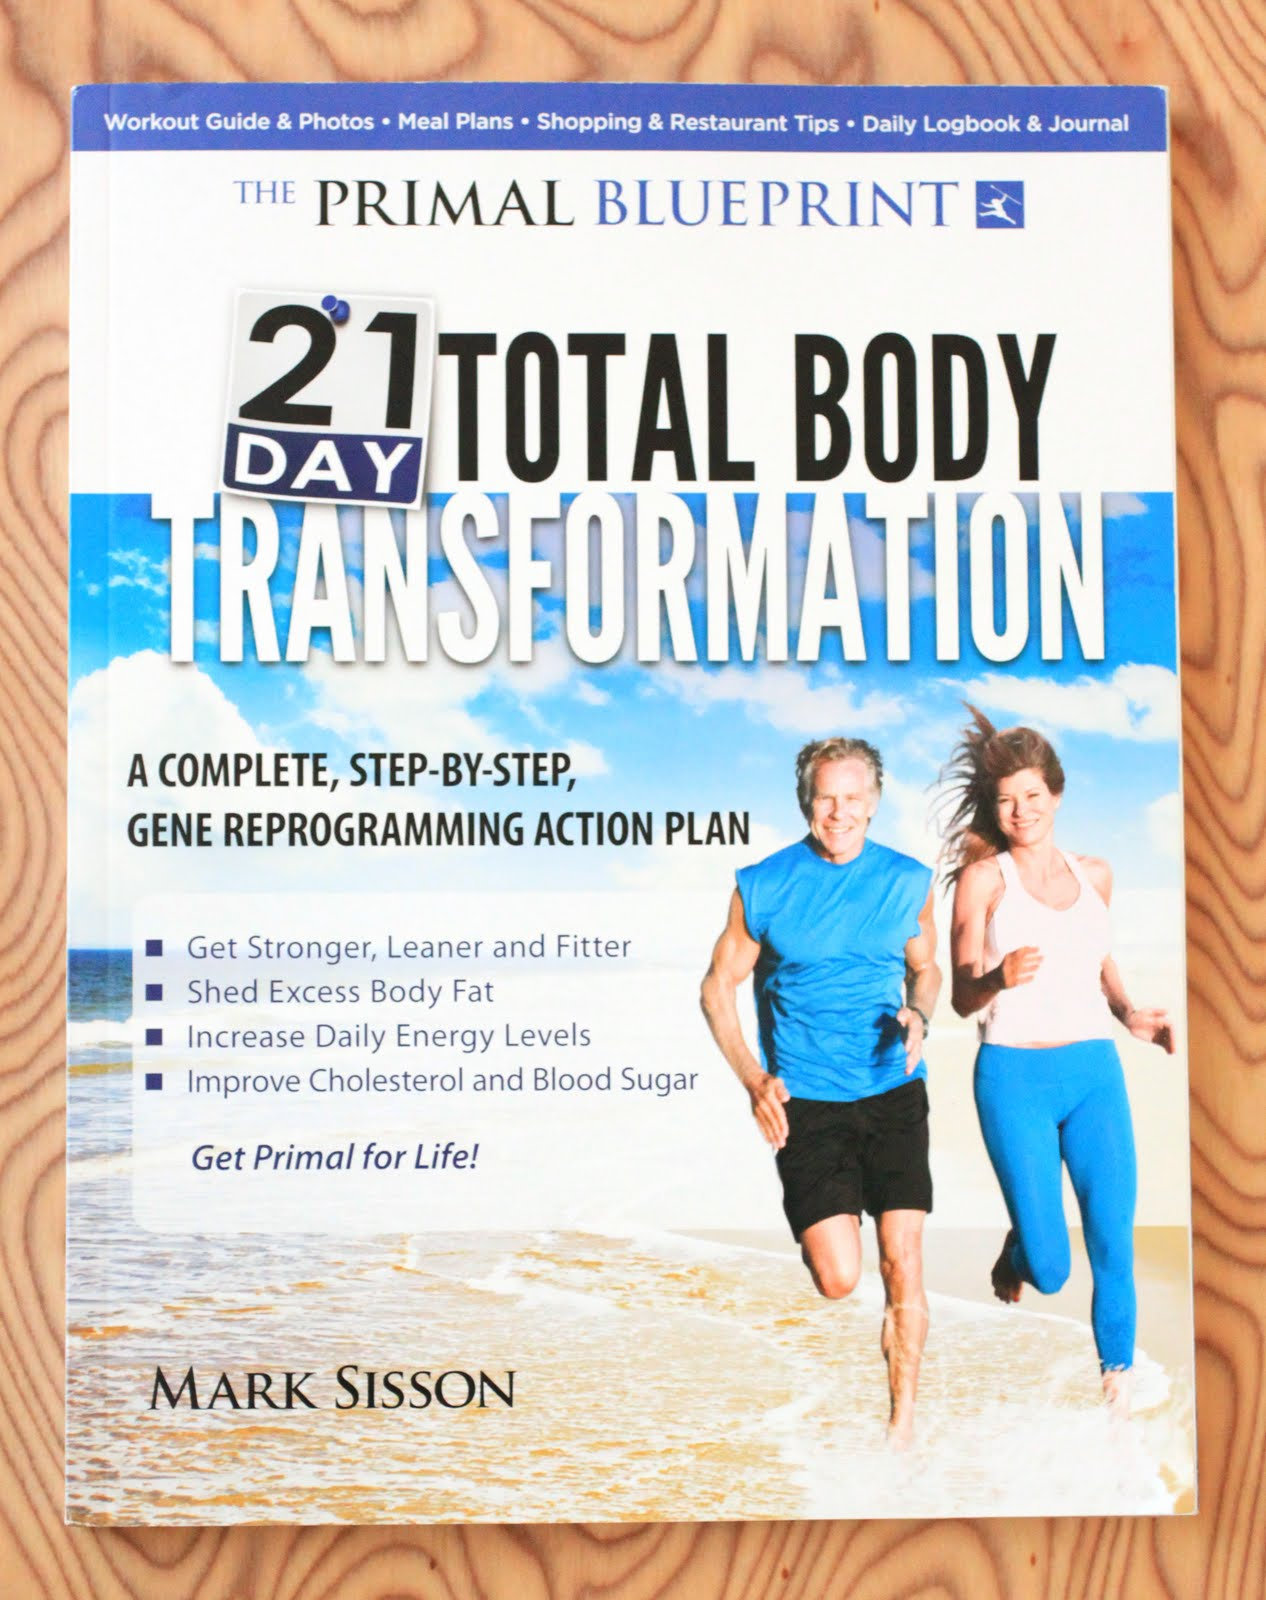 Primal blueprint 21 day total body transformation by mark sisson primal blueprint 21 day total body transformation by mark sisson malvernweather Images